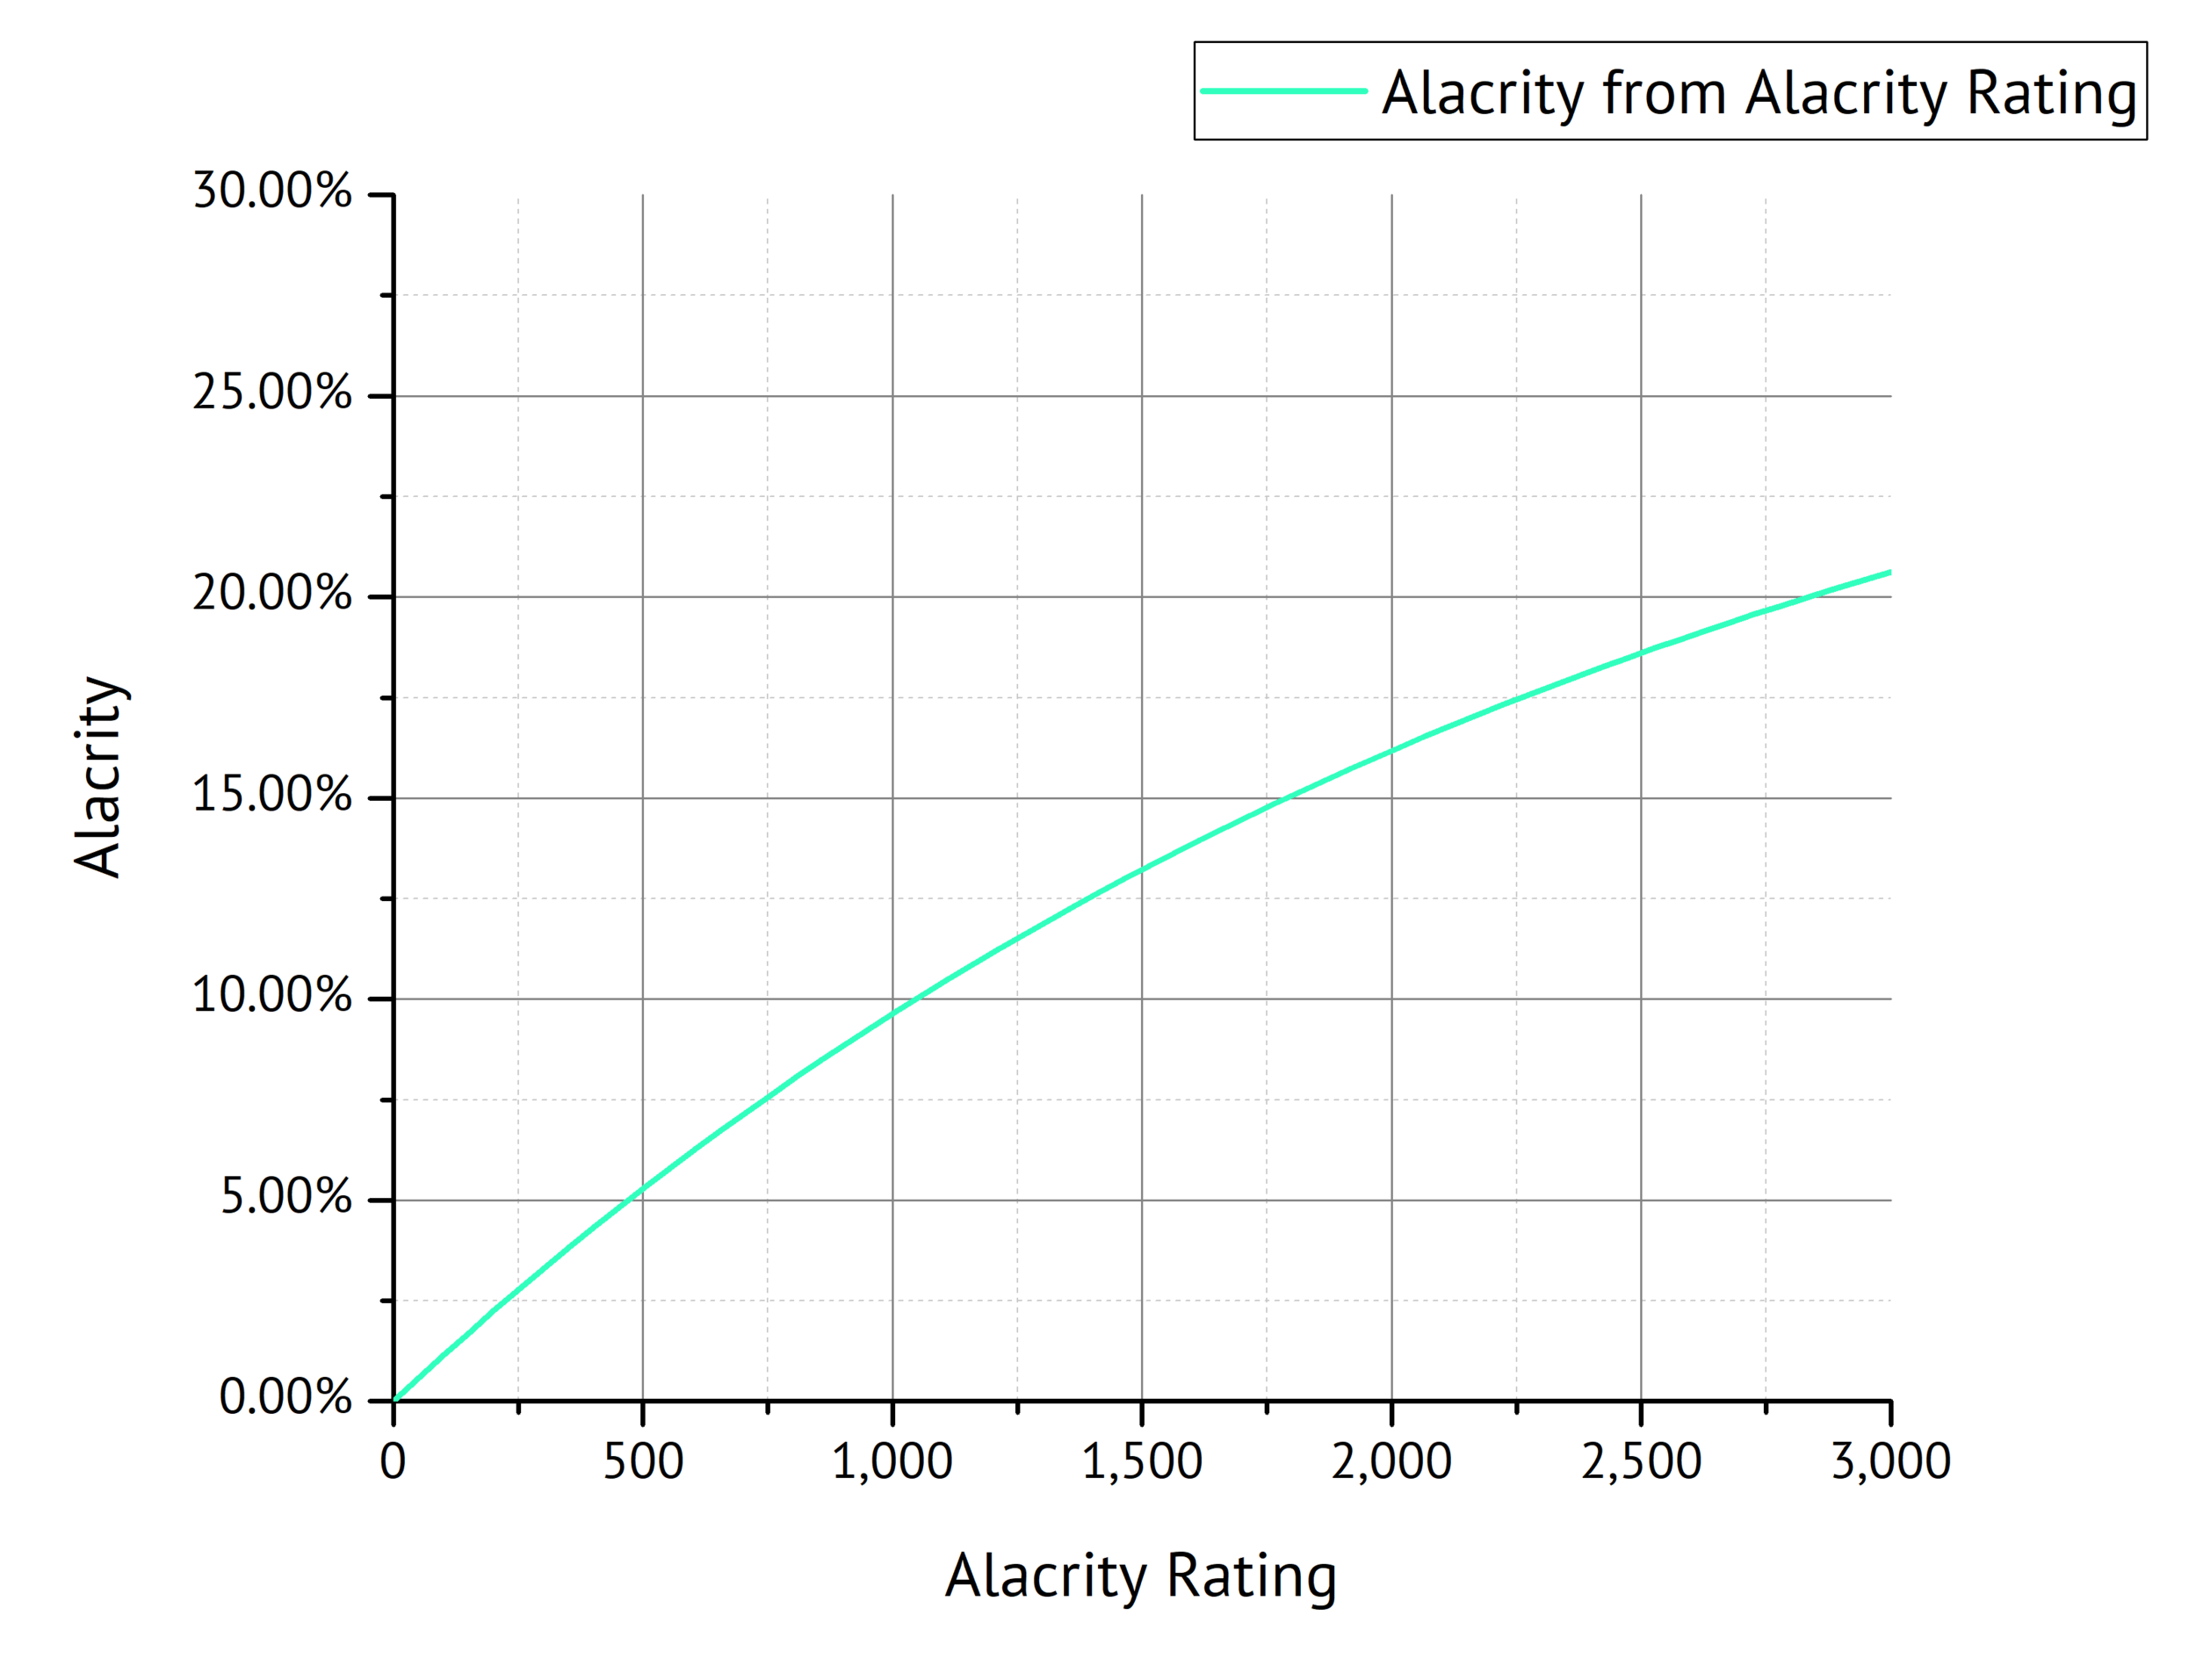 Fig. 9: Alacrity as a function of Alacrity Rating.